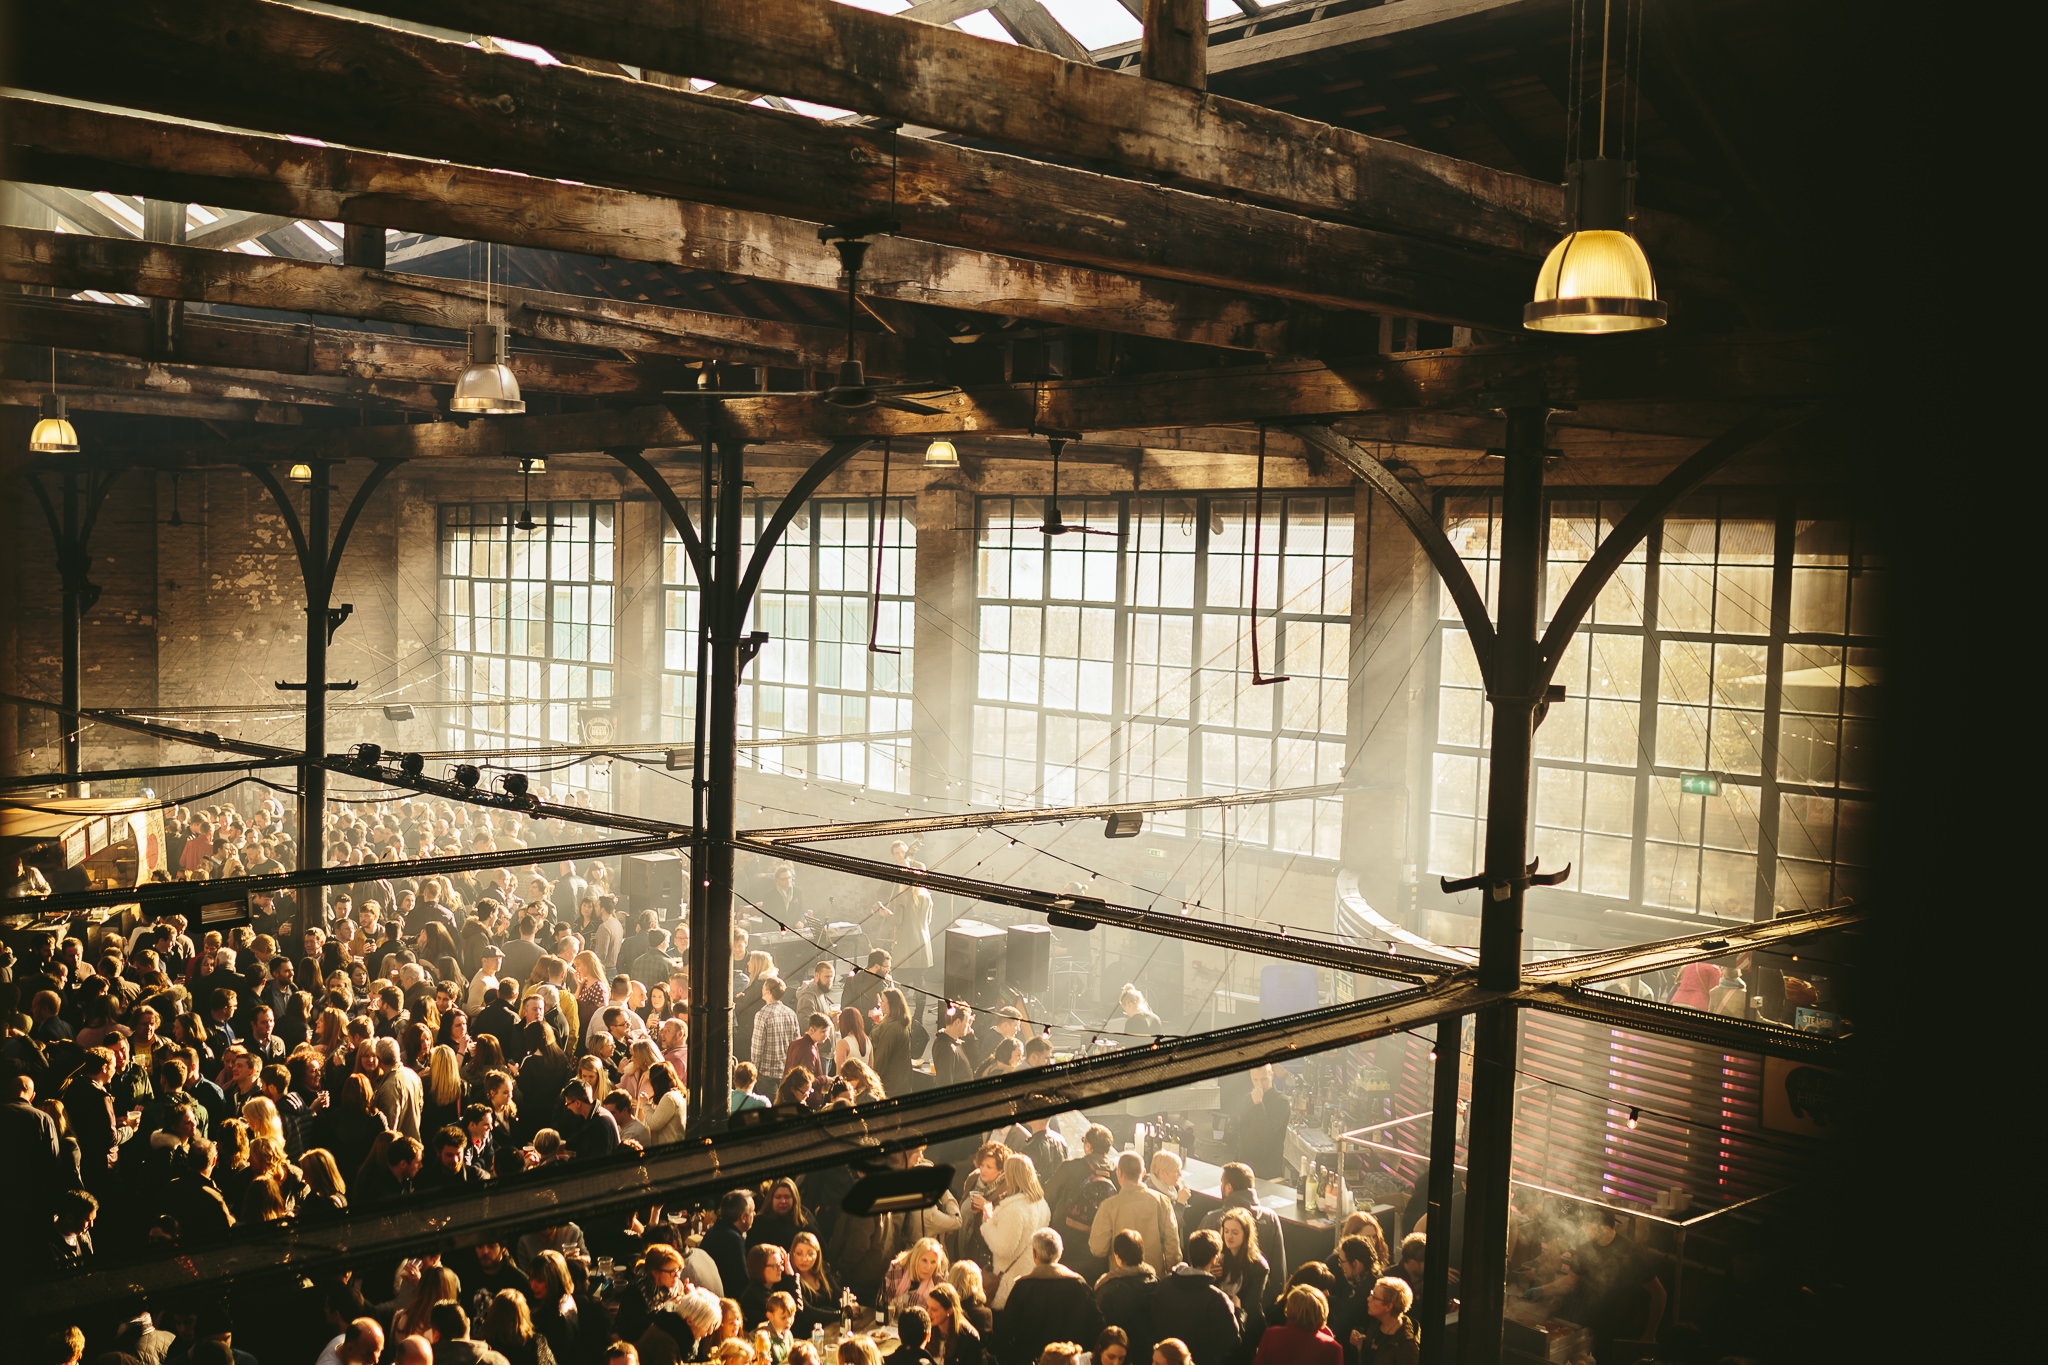 We also curate and produce street food, live music events and markets for venues, councils, private events and weddings. In 2013 we co-founded renowned music and street food event The Boiler Shop Steamer.